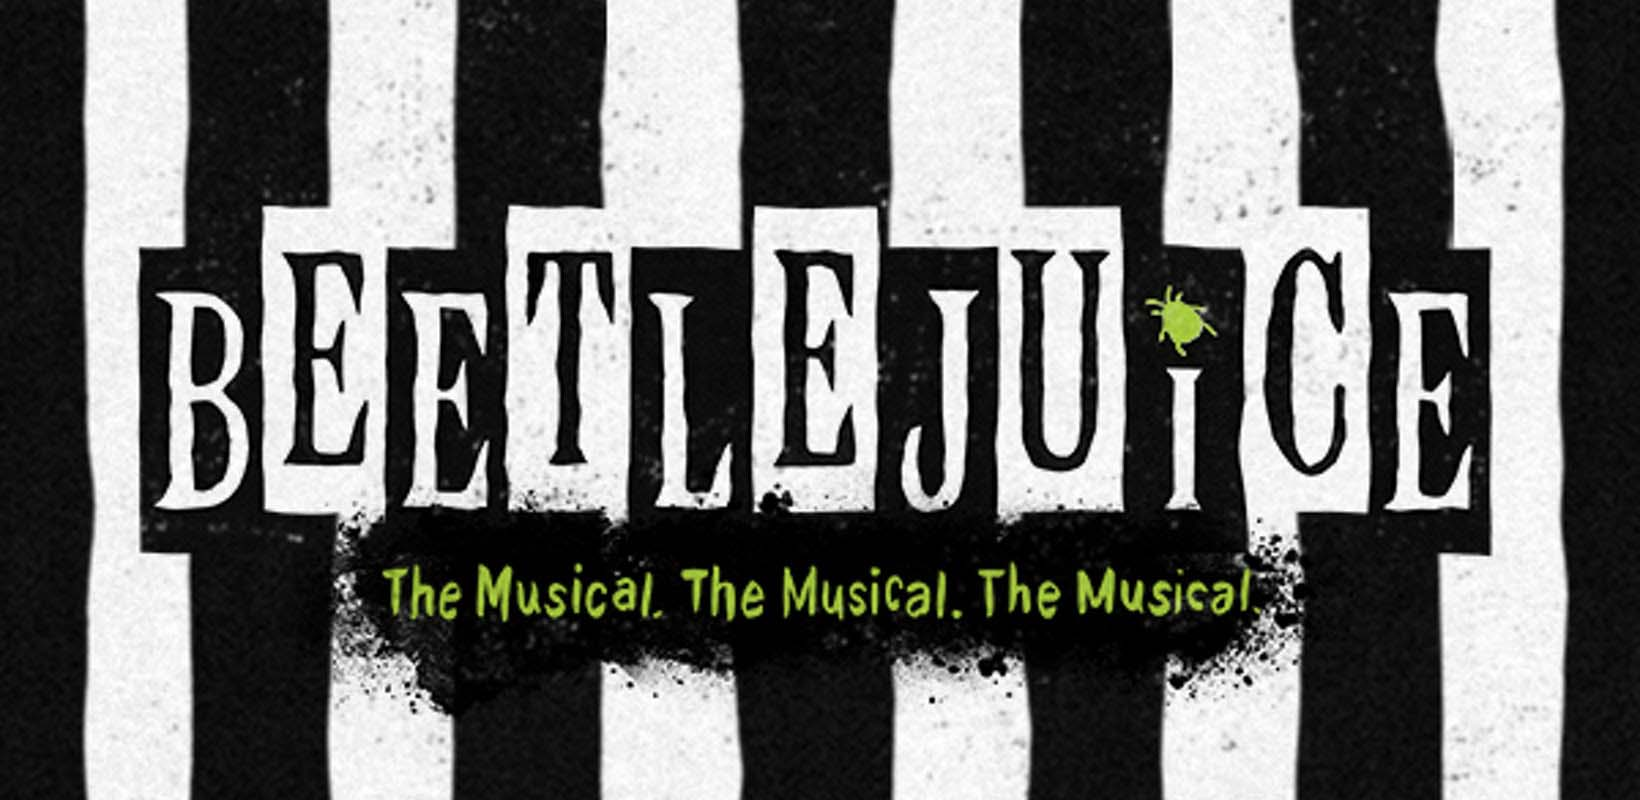 Tickets to BEETLEJUICE on Broadway